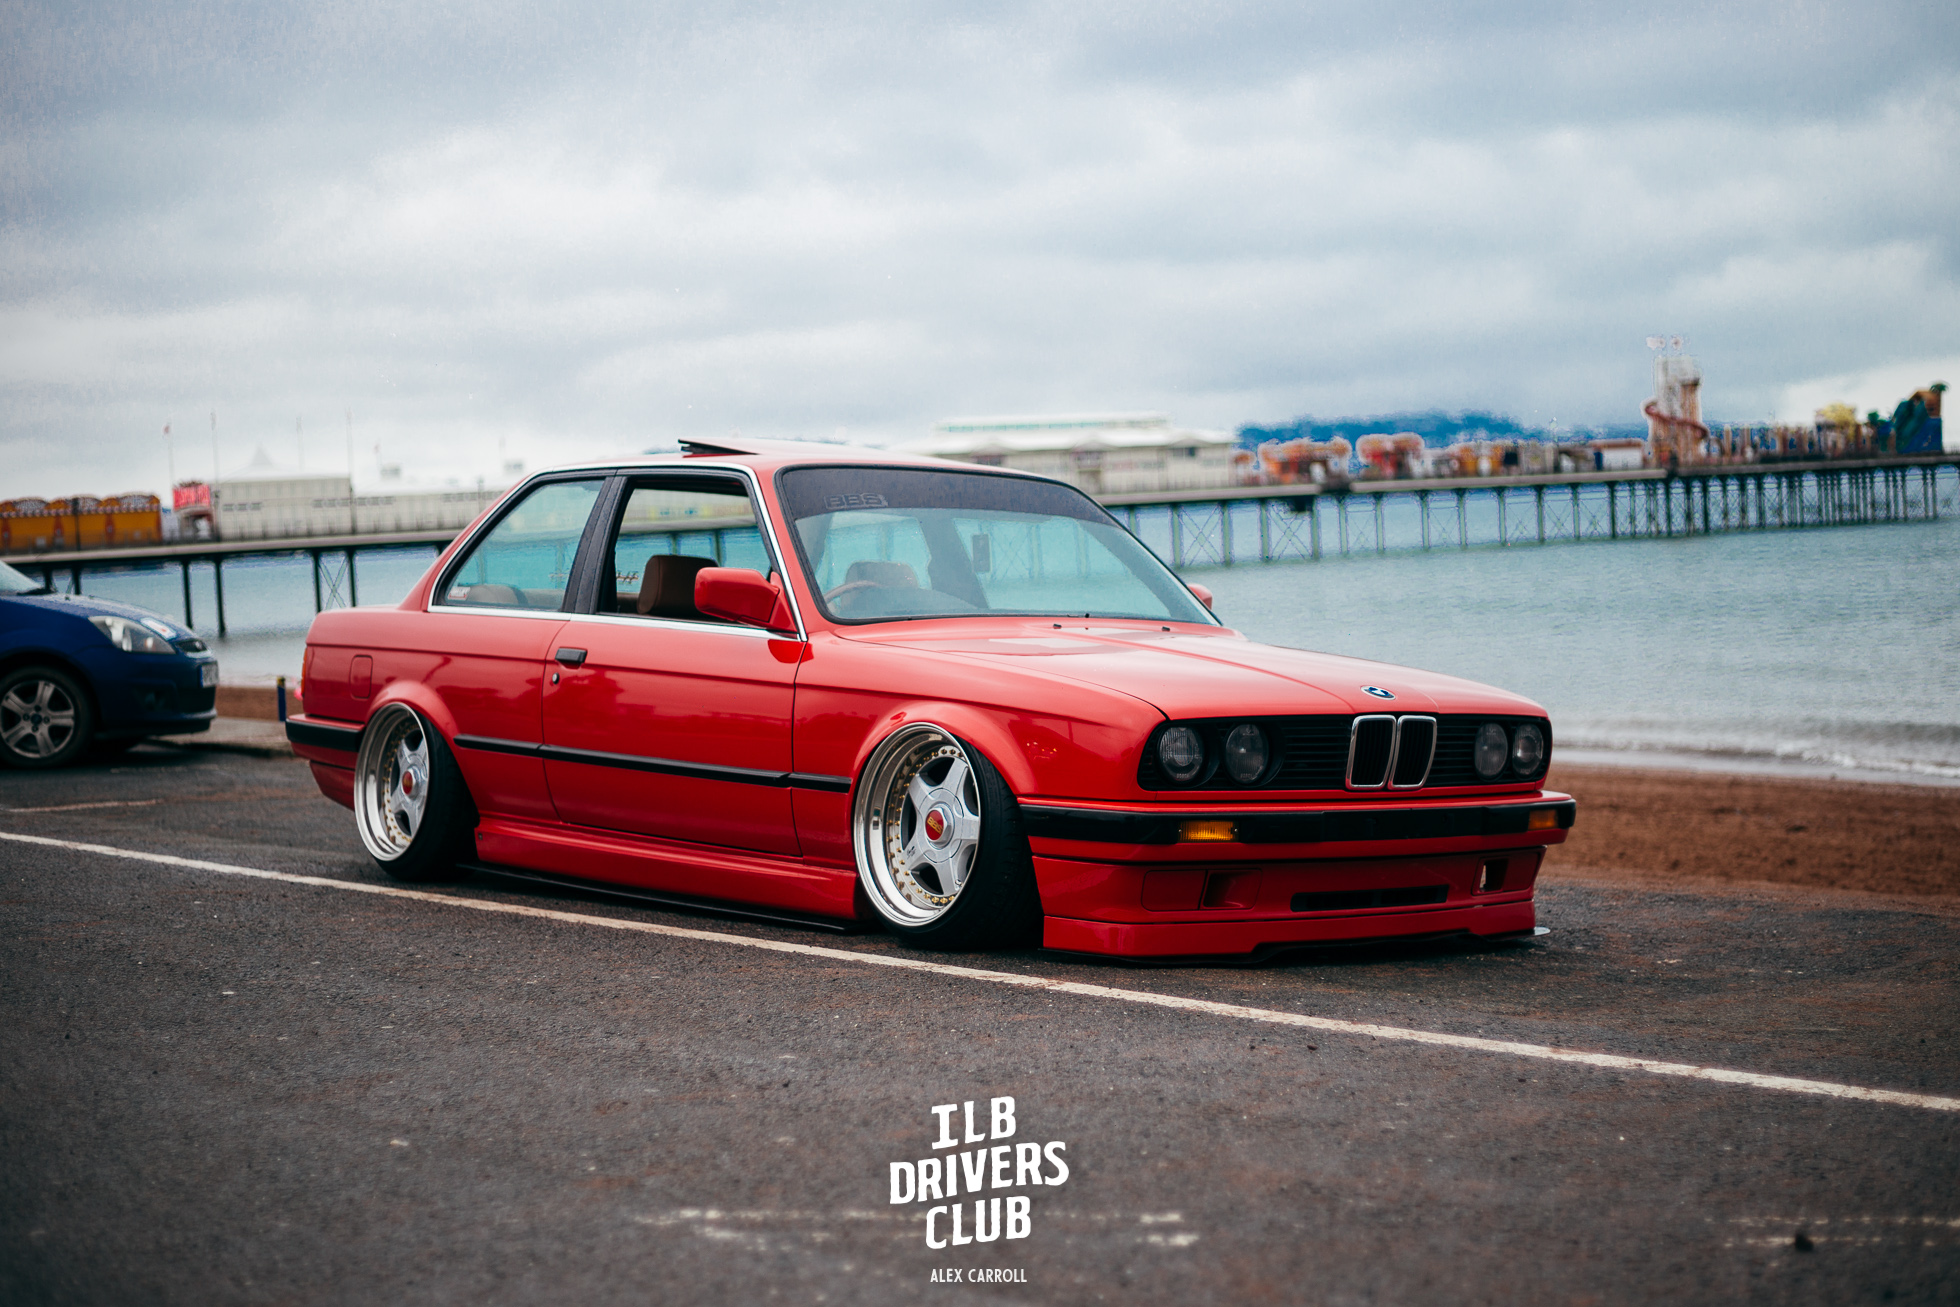 Ilb Drivers Club Reece Parr S Bmw E30